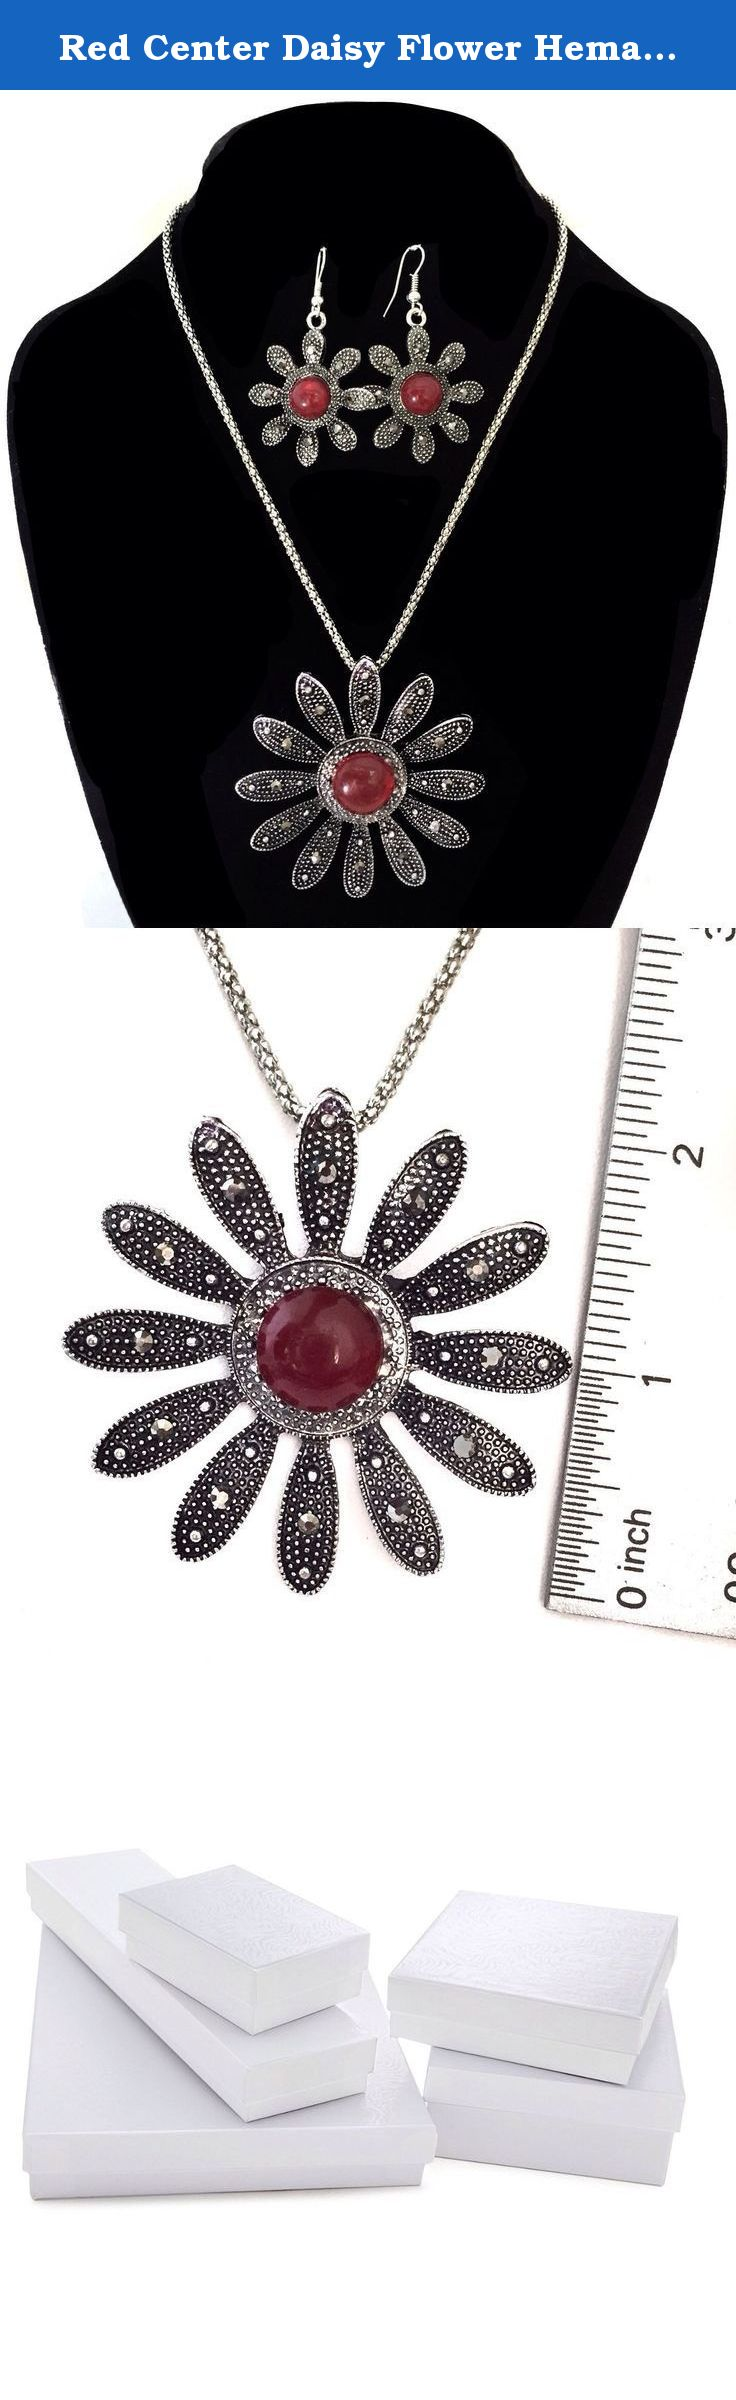 Red Center Daisy Flower Hematite Look Silver Tone Necklace Earrings Set. Gift Boxed. Great for year round wear.